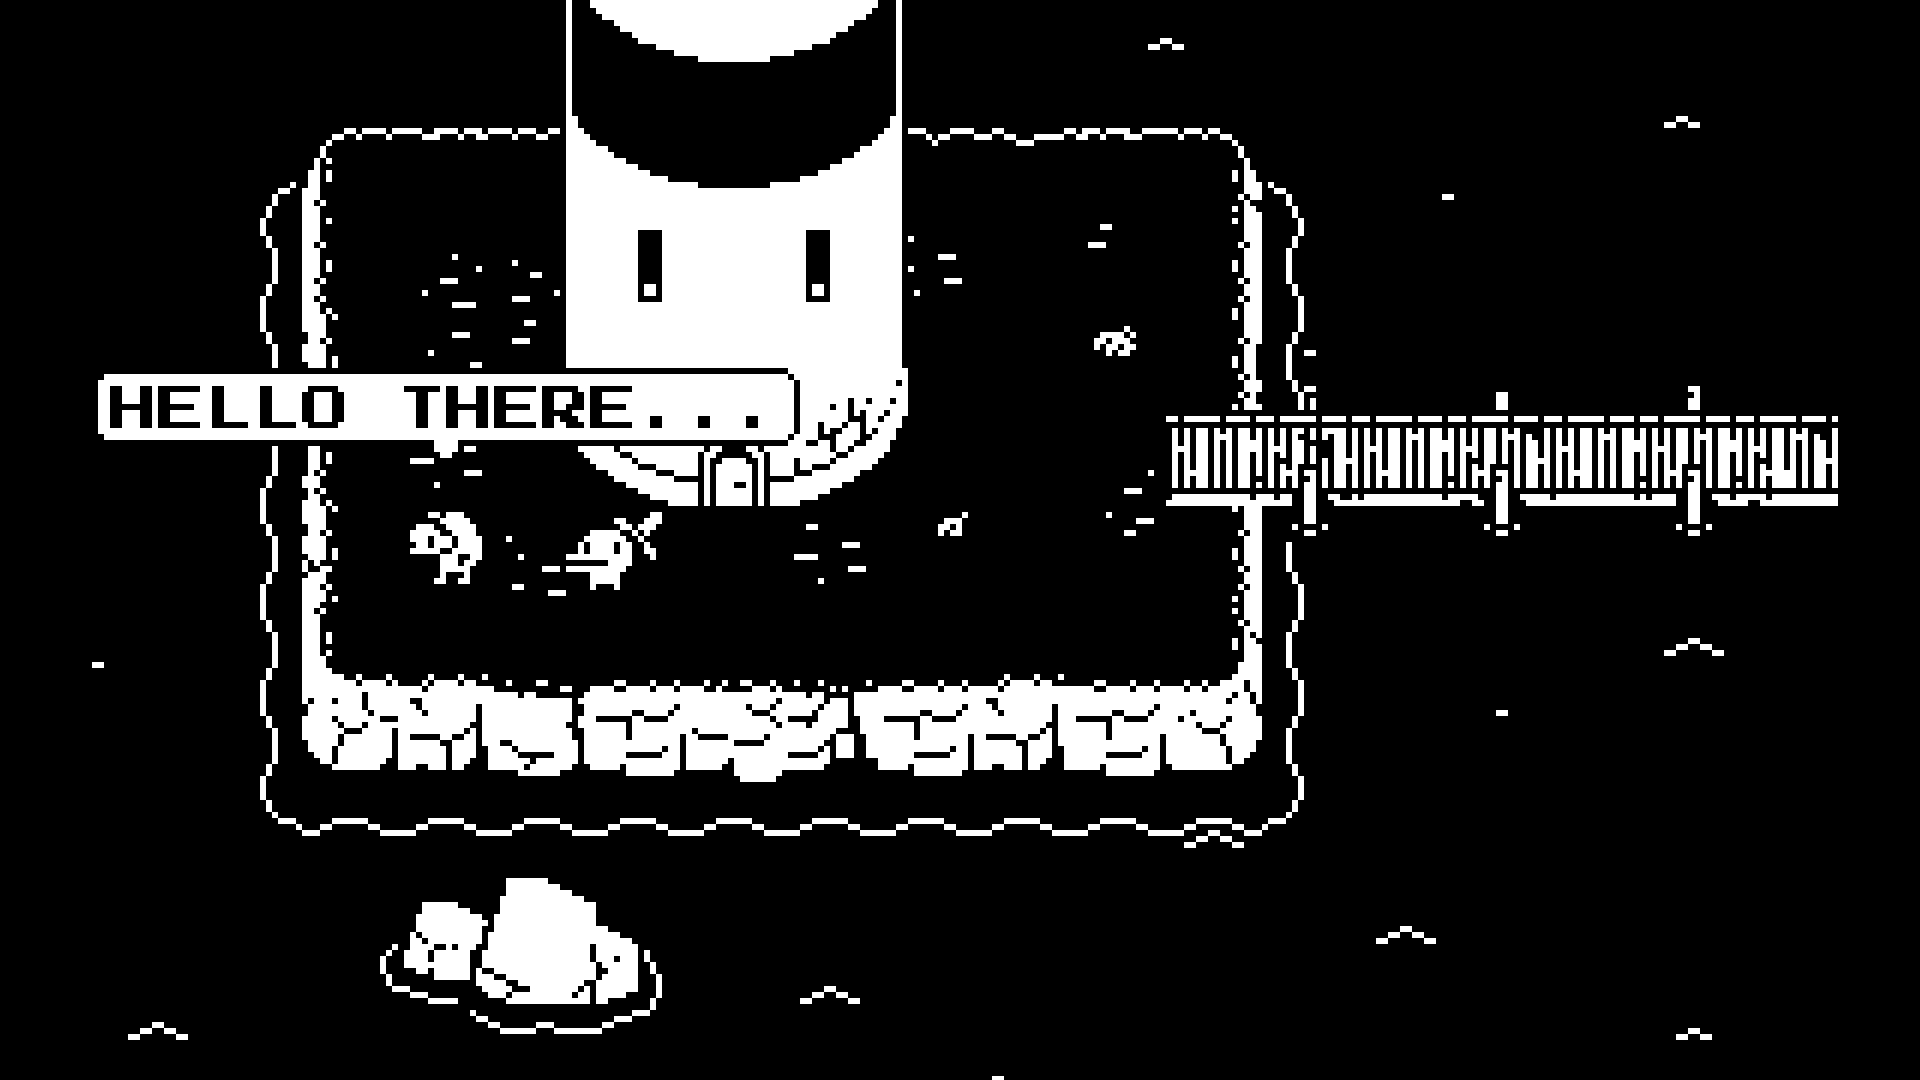 Minit (PS4) - it only takes a minute girl; to fall in love!